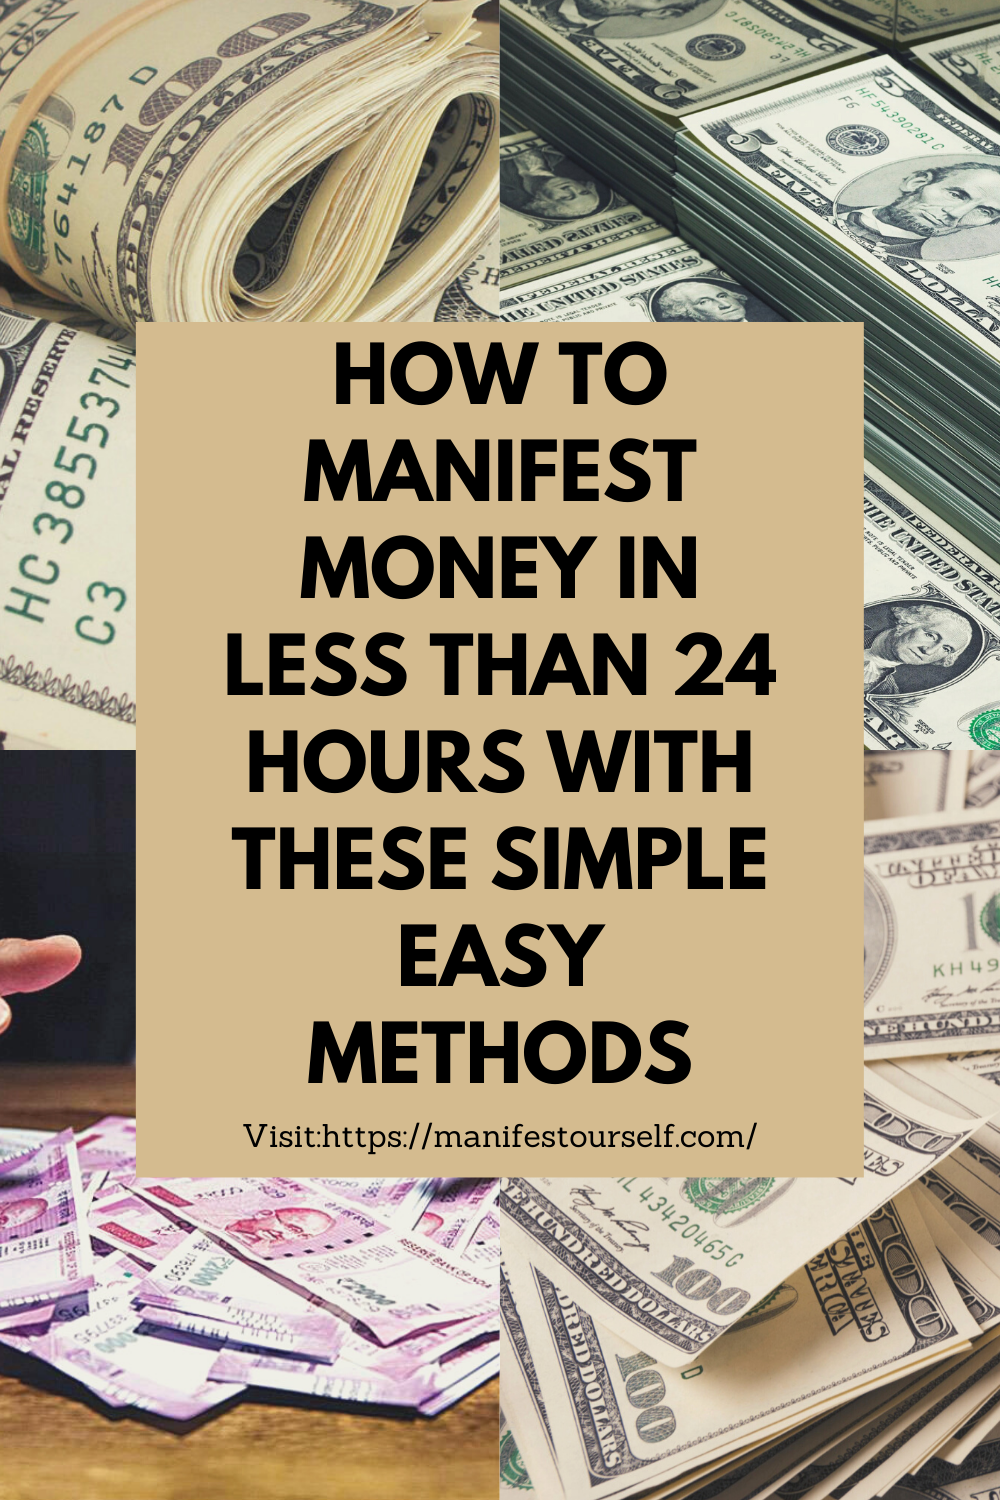 Learn How To Manifest Money In 24 Hours Law Of Attraction Tips Manifestation Law Of Attraction Tips Manifesting Money